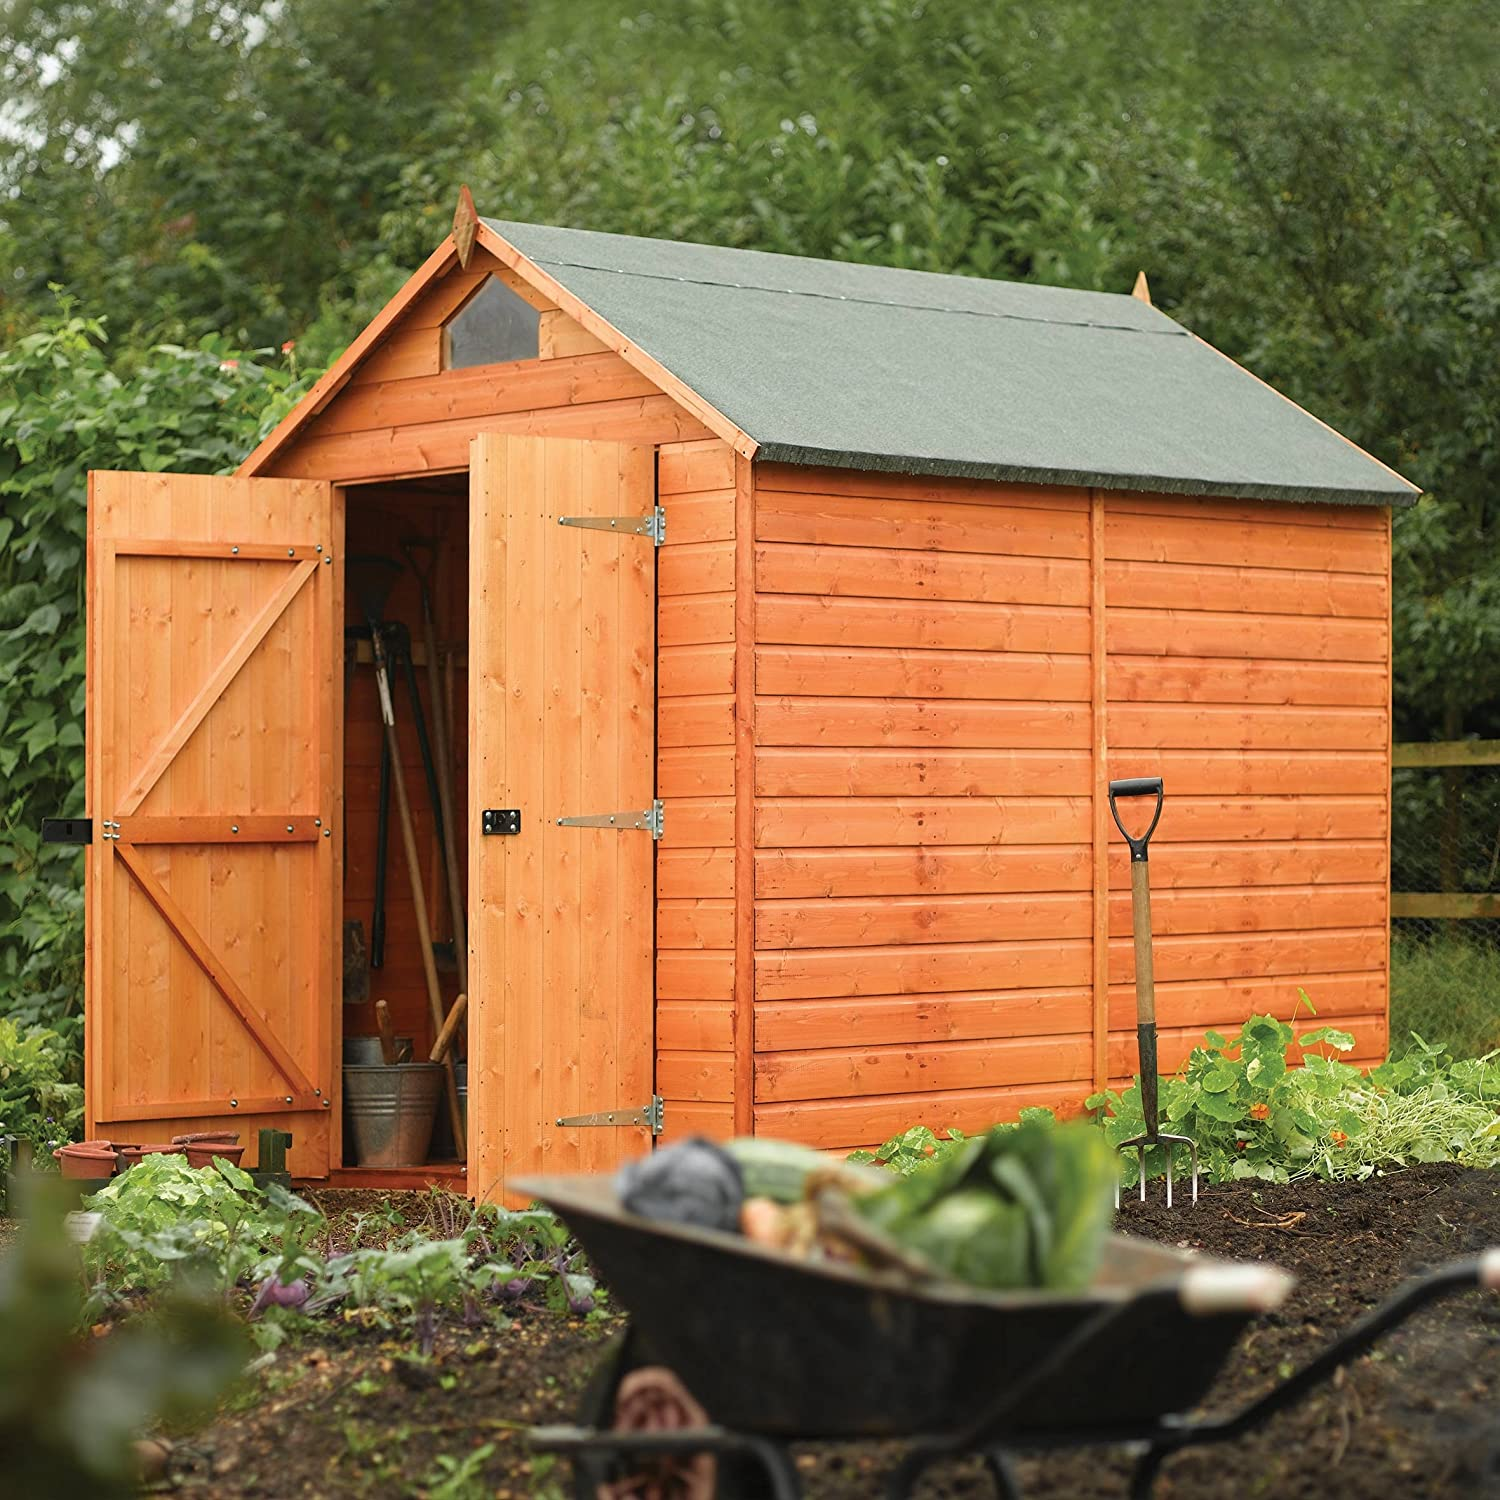 amazoncom rowlinson a053 secure storage shed 8 by 6 garden outdoor